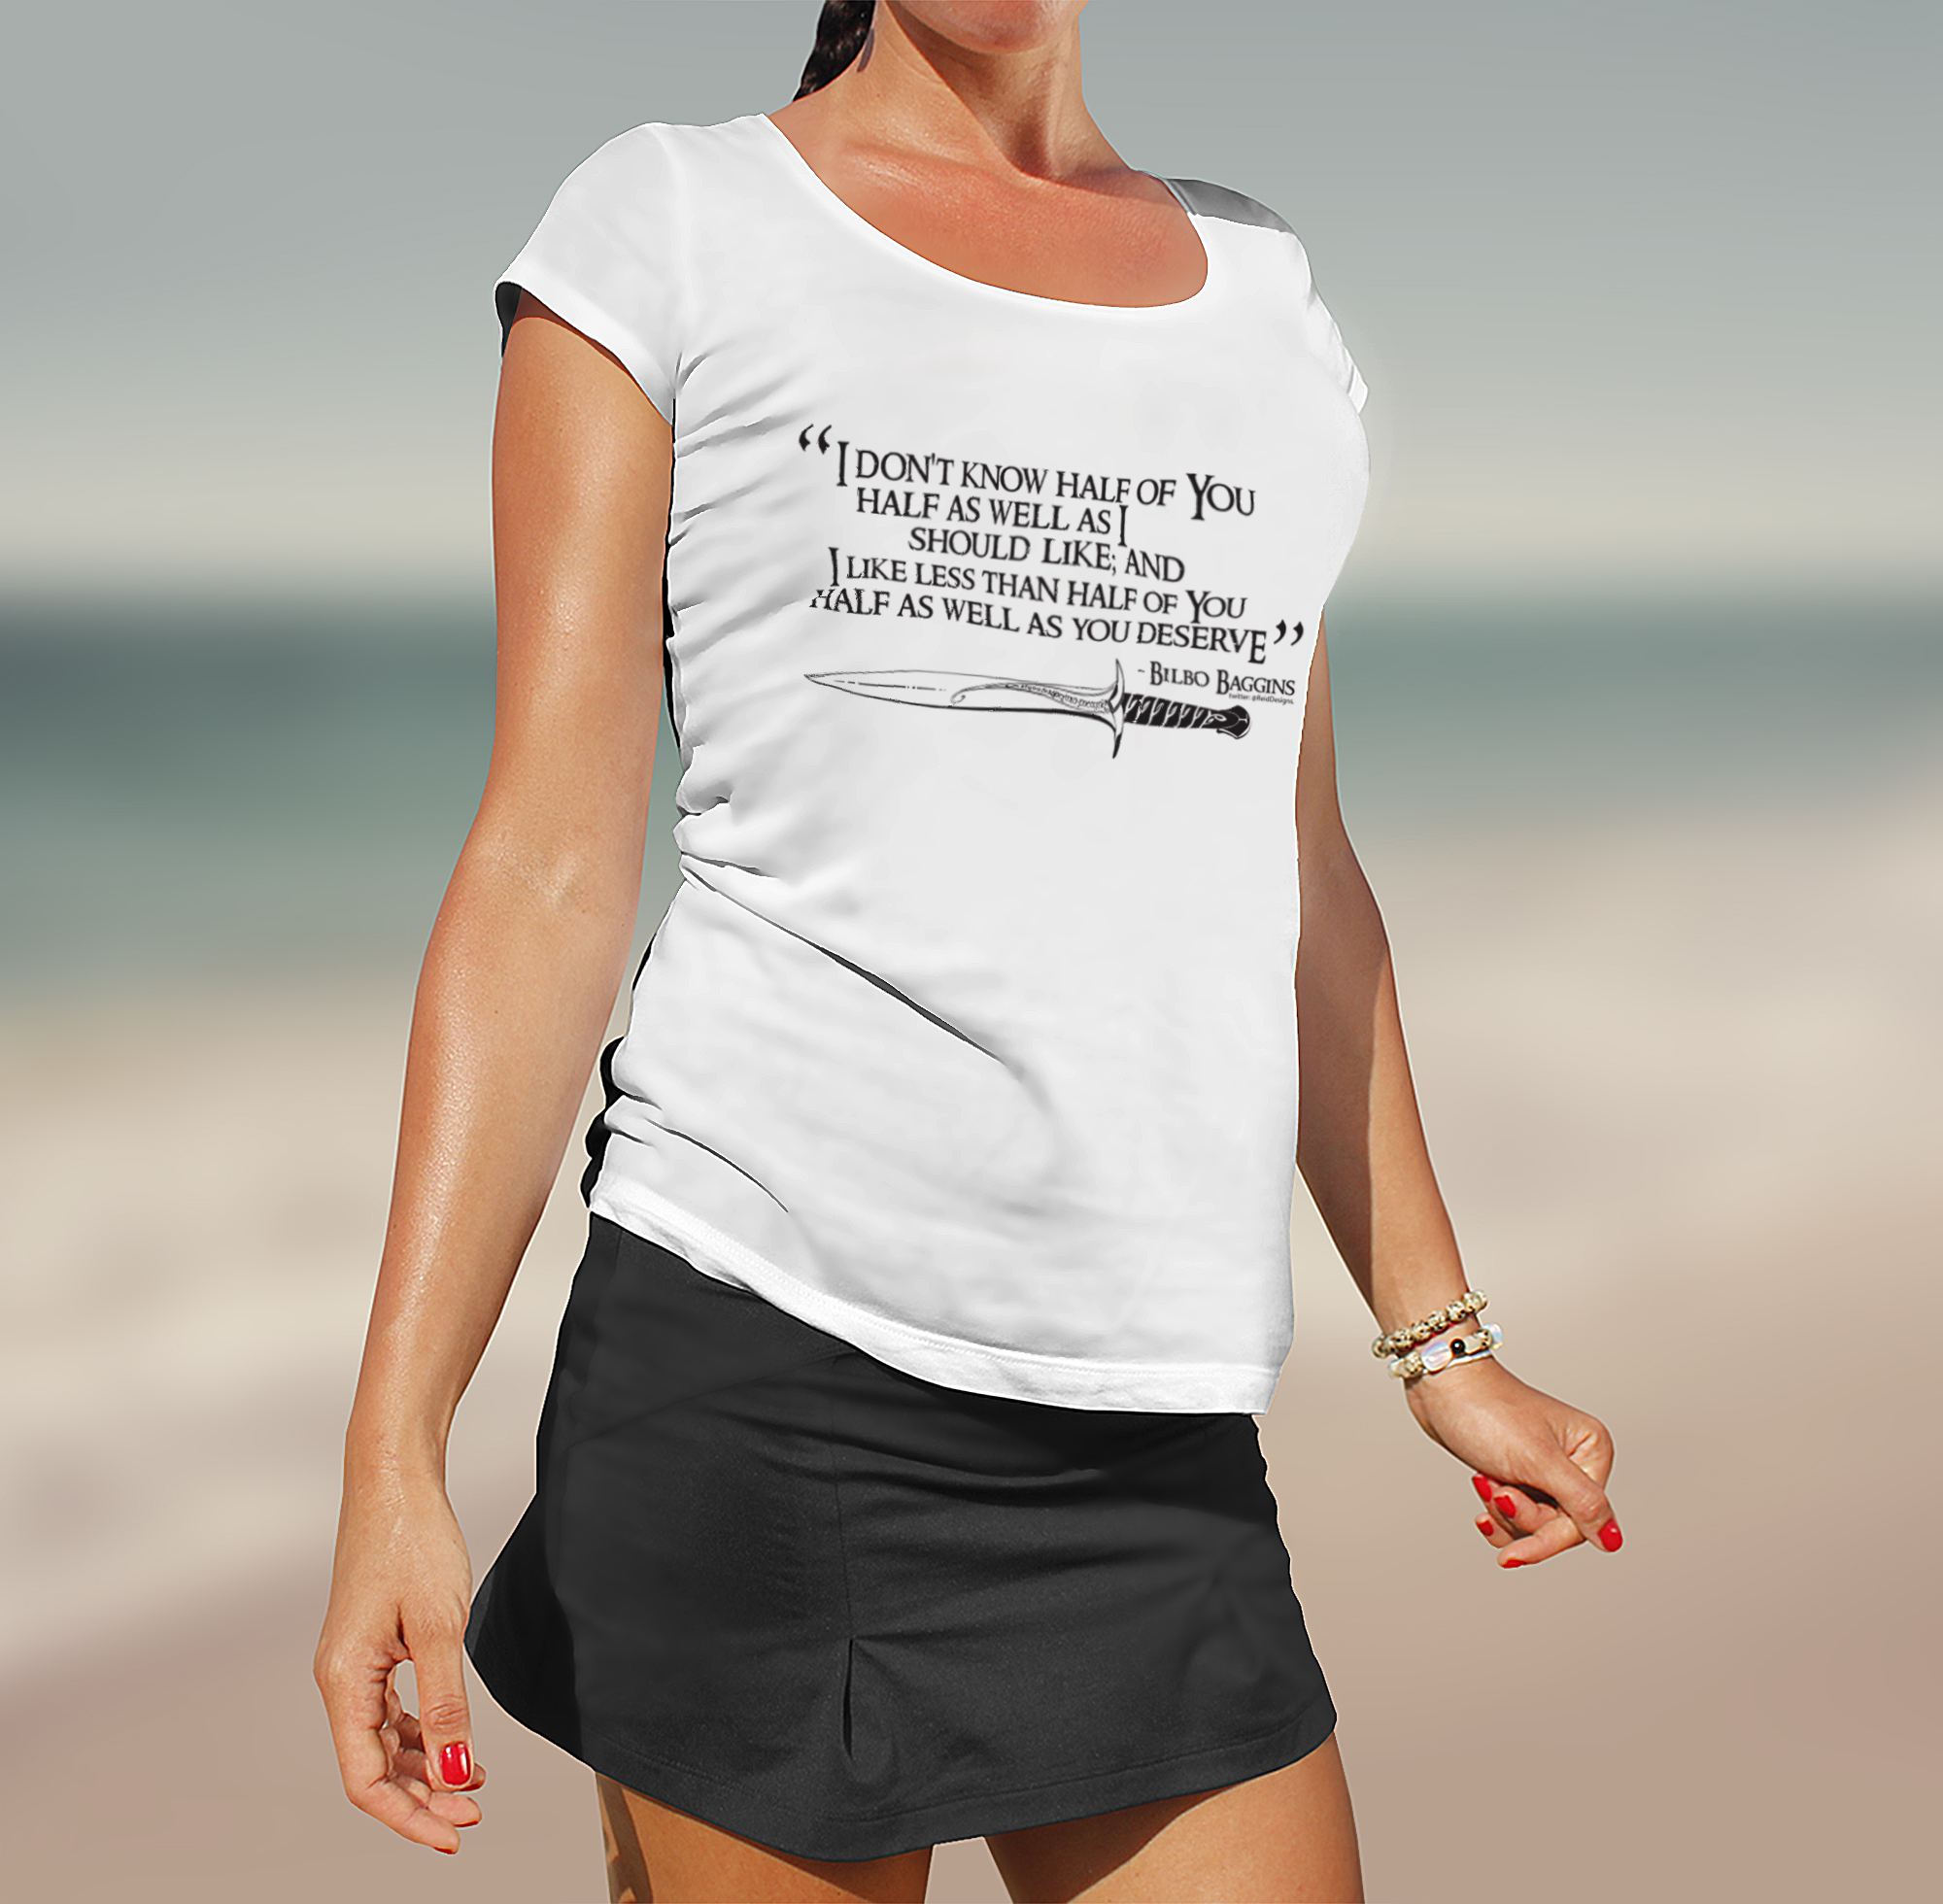 Woman on beach wearing a white tshirt with the quotation from the Lord of the Rings printed on the front.